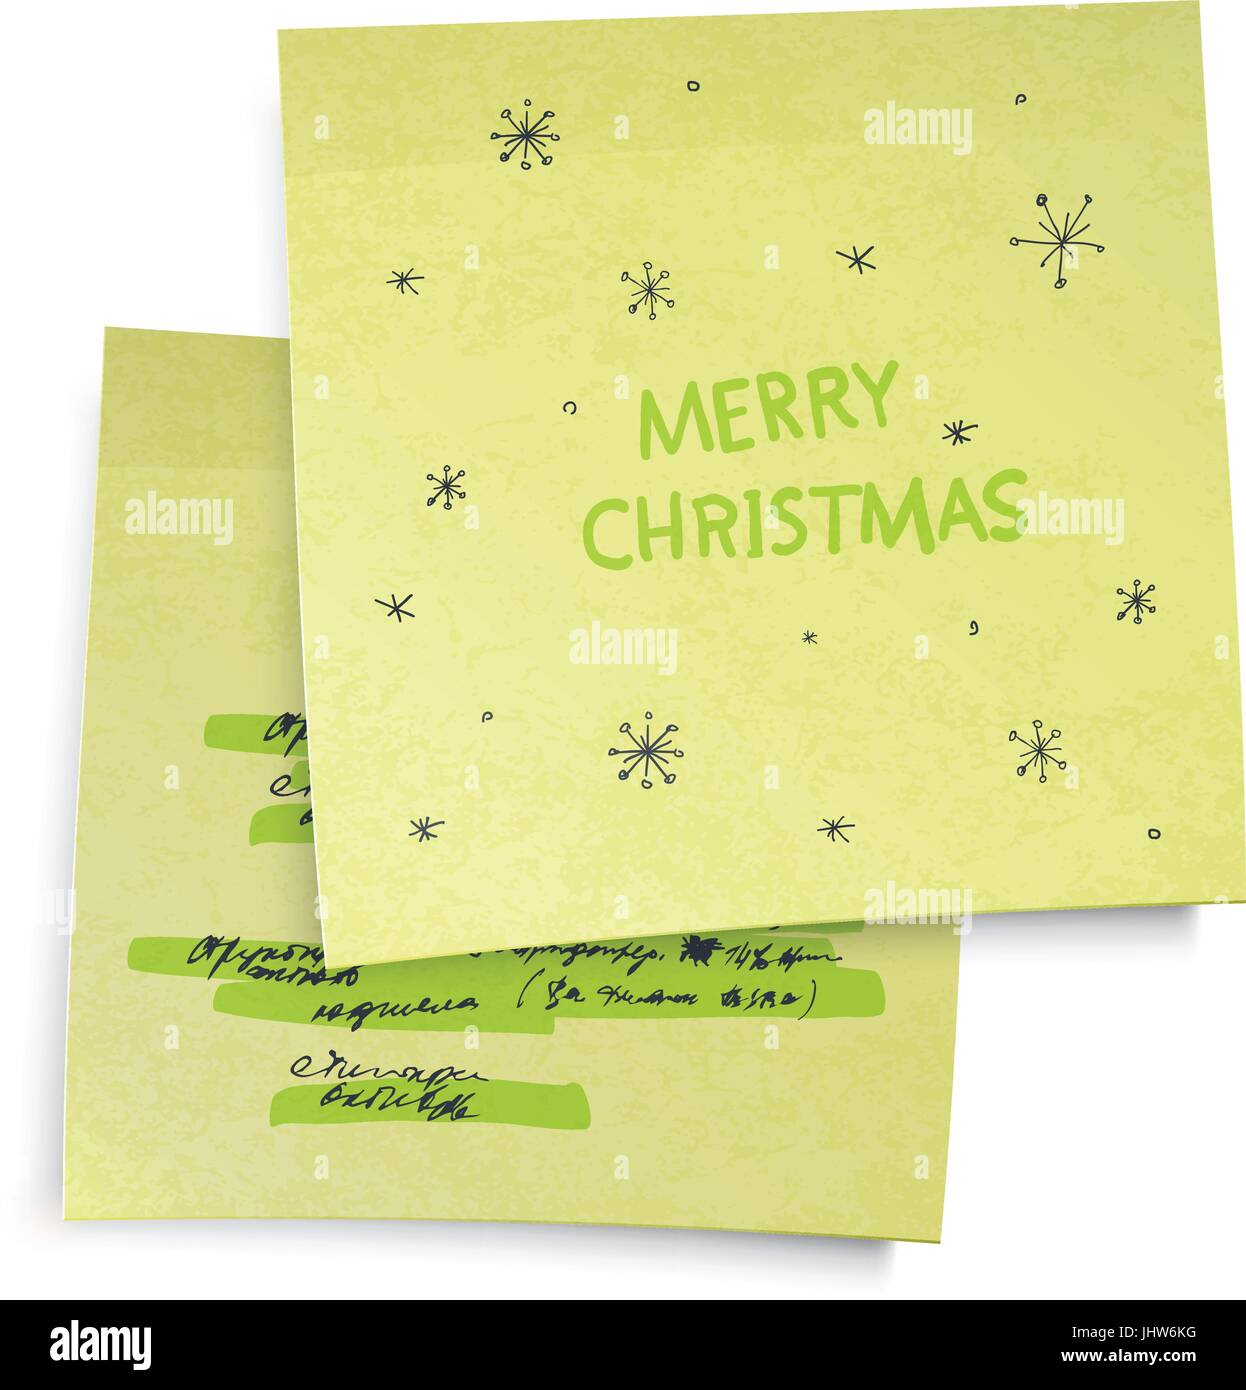 Business Yellow Sticky Notes With Merry Christmas Greetings Vector